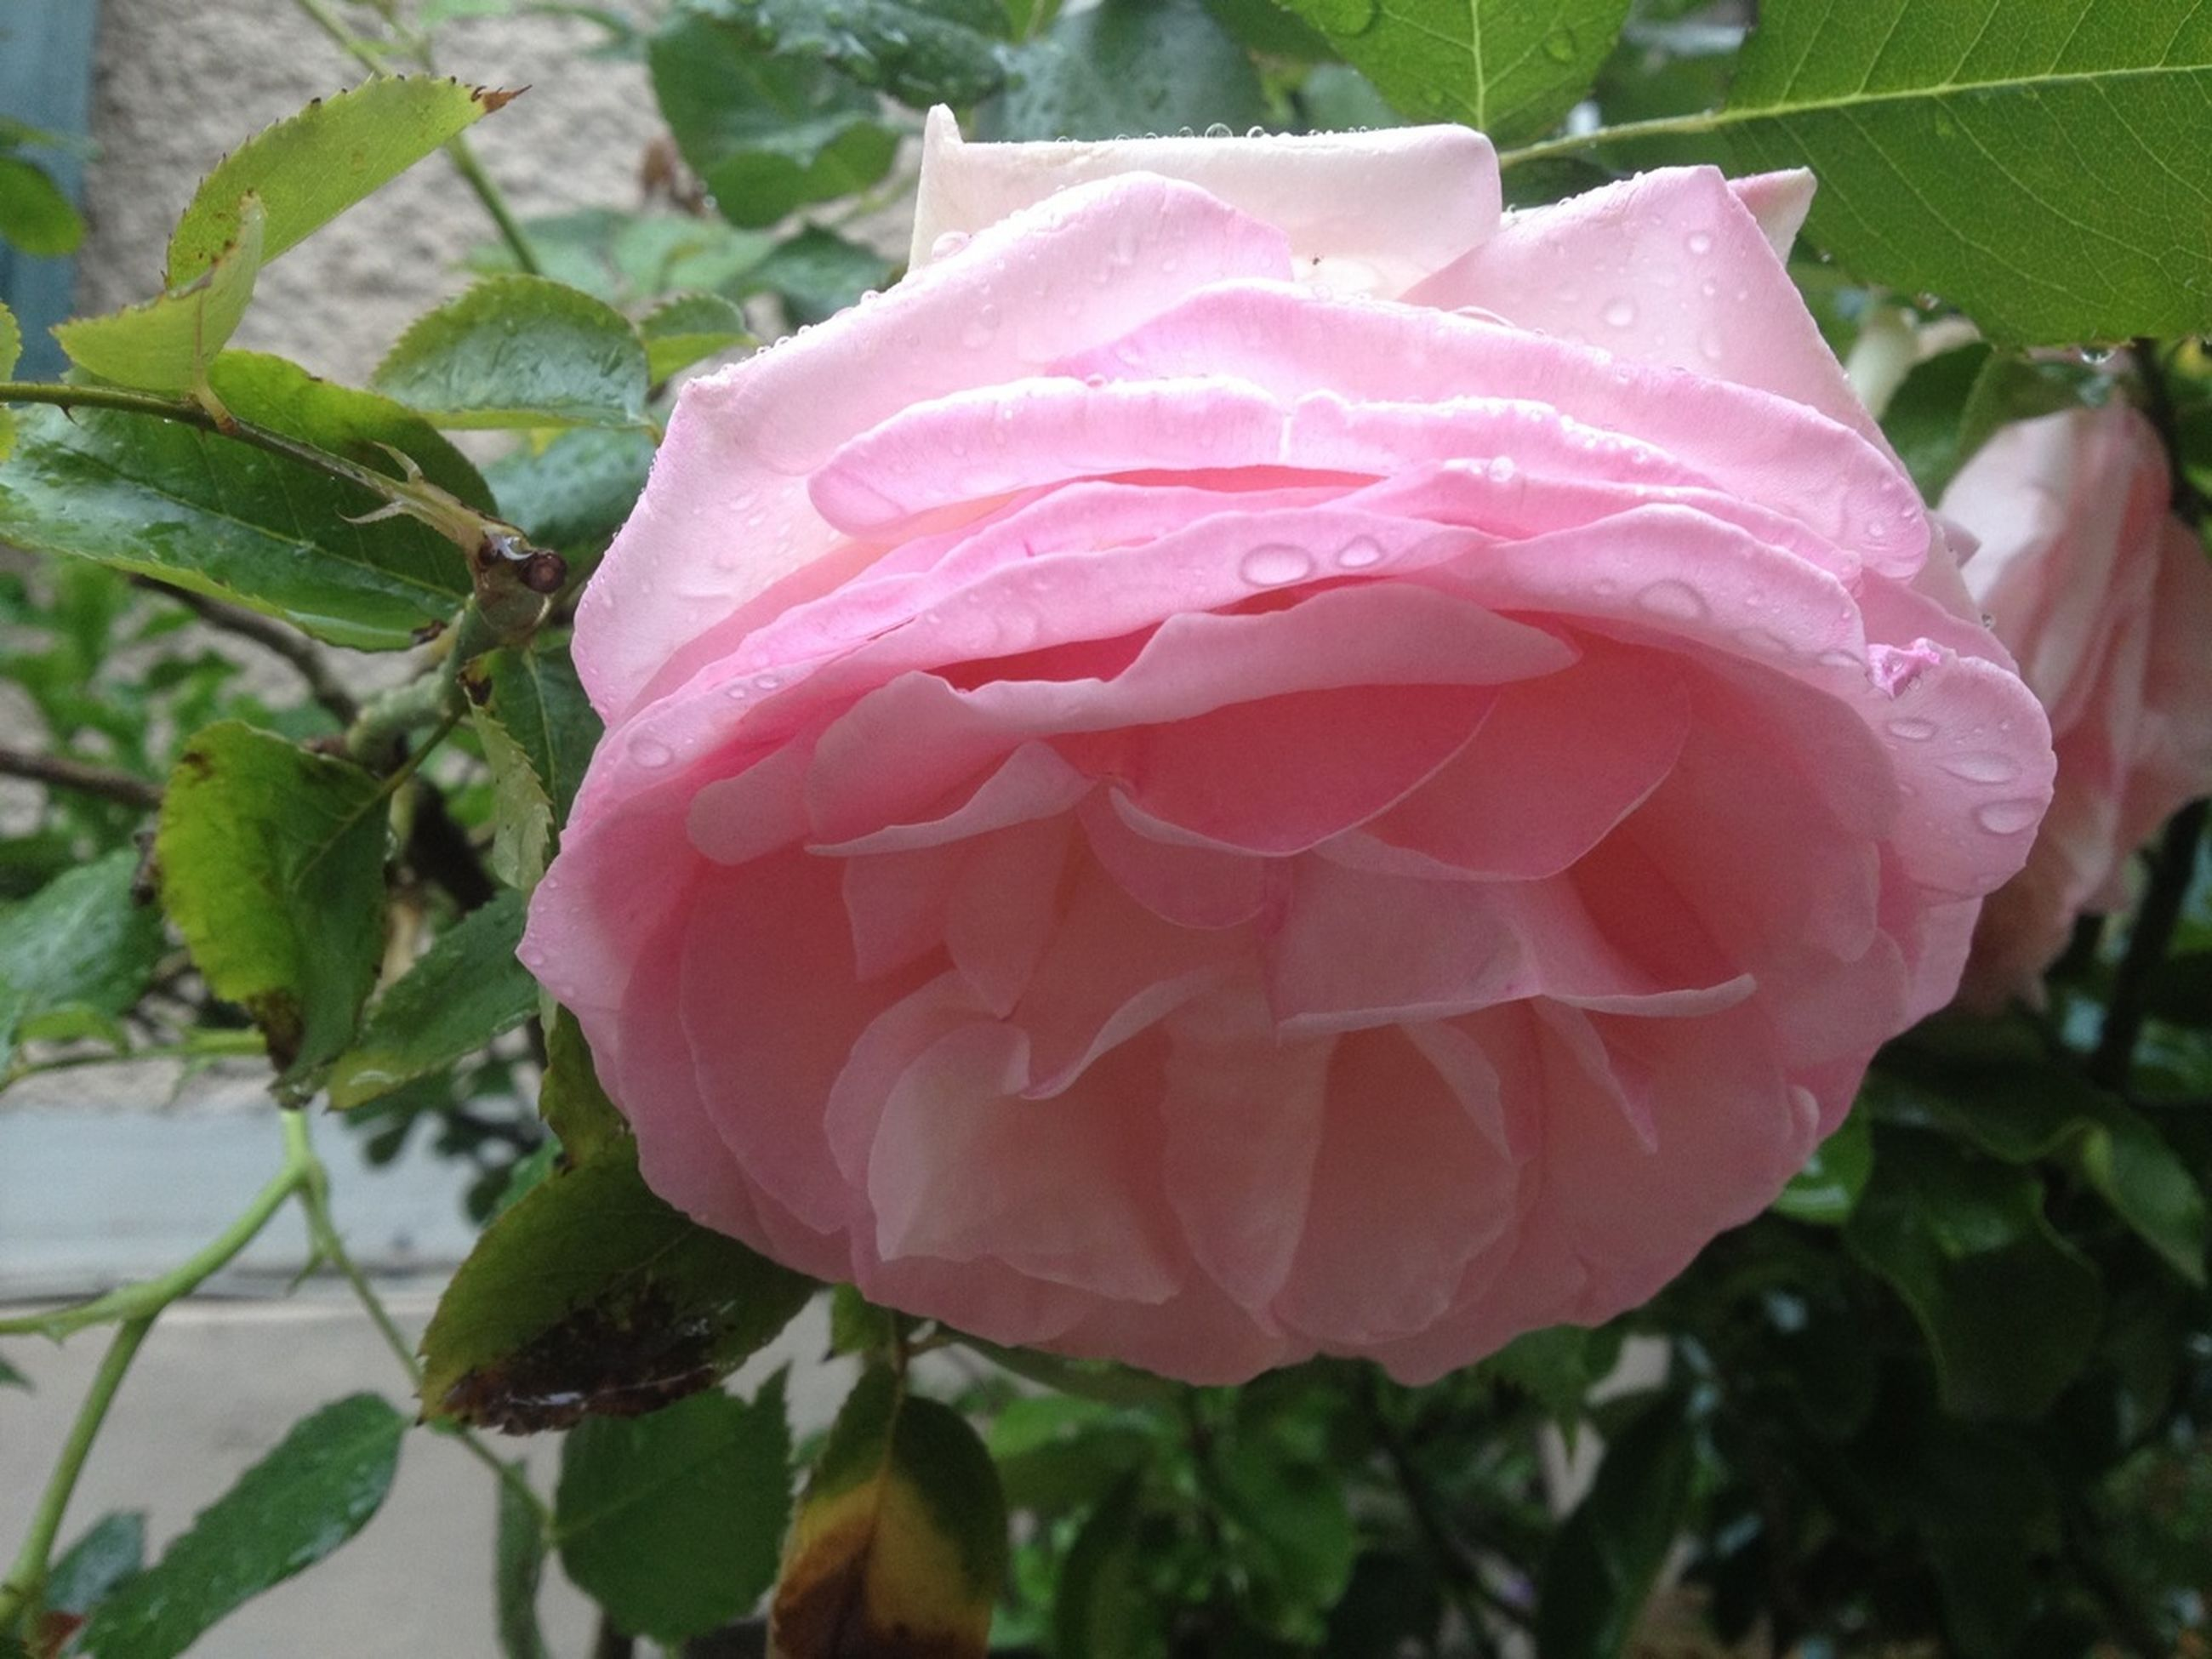 flower, petal, freshness, fragility, flower head, rose - flower, beauty in nature, growth, close-up, single flower, pink color, blooming, leaf, rose, nature, plant, water, drop, focus on foreground, wet